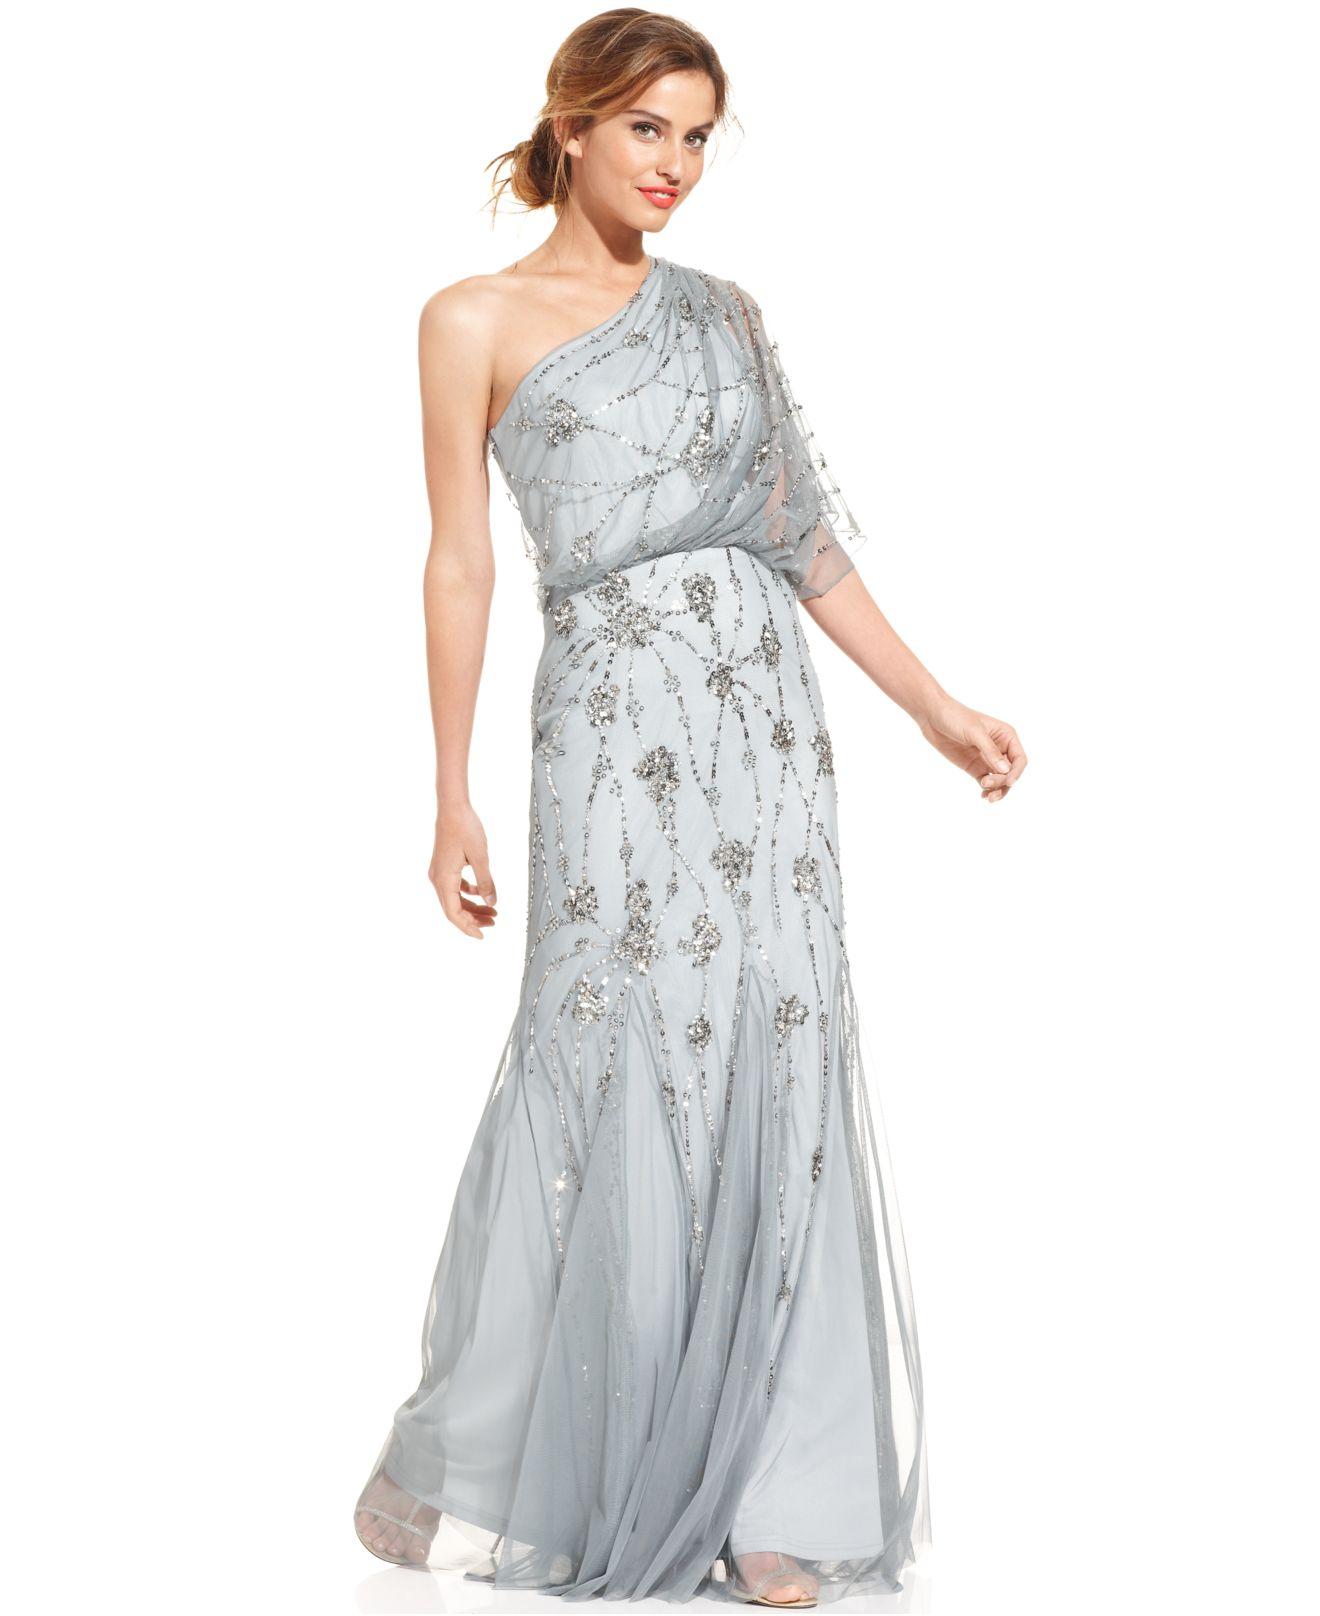 Lyst Adrianna Papell Oneshoulder Beaded Blouson Gown In Gray